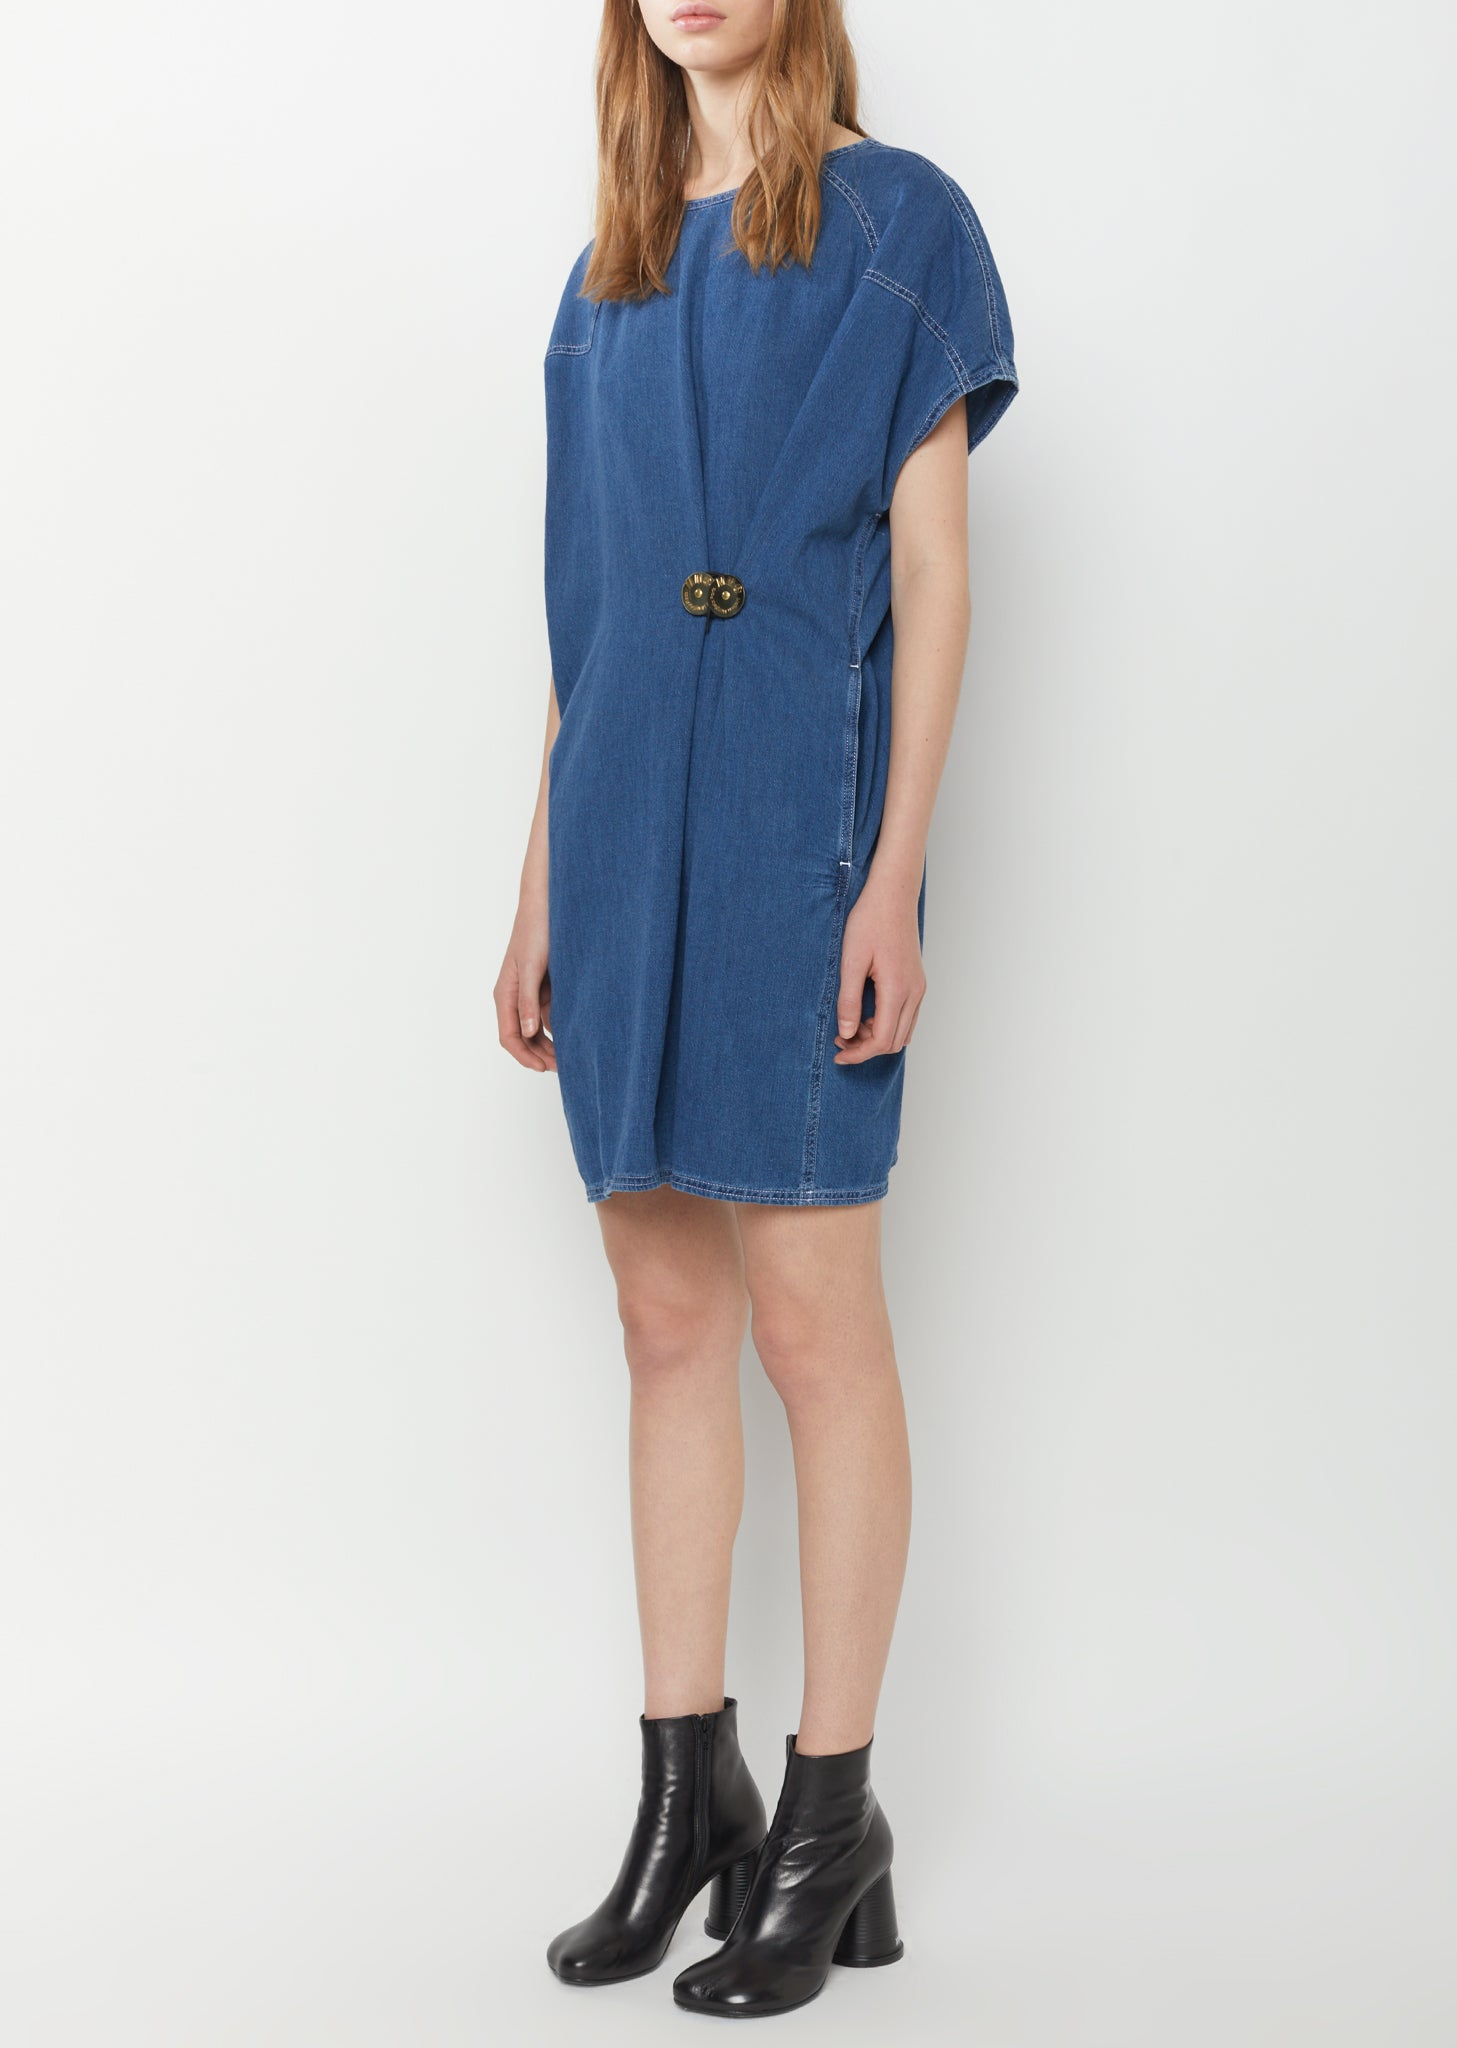 80's Wash Denim Dress